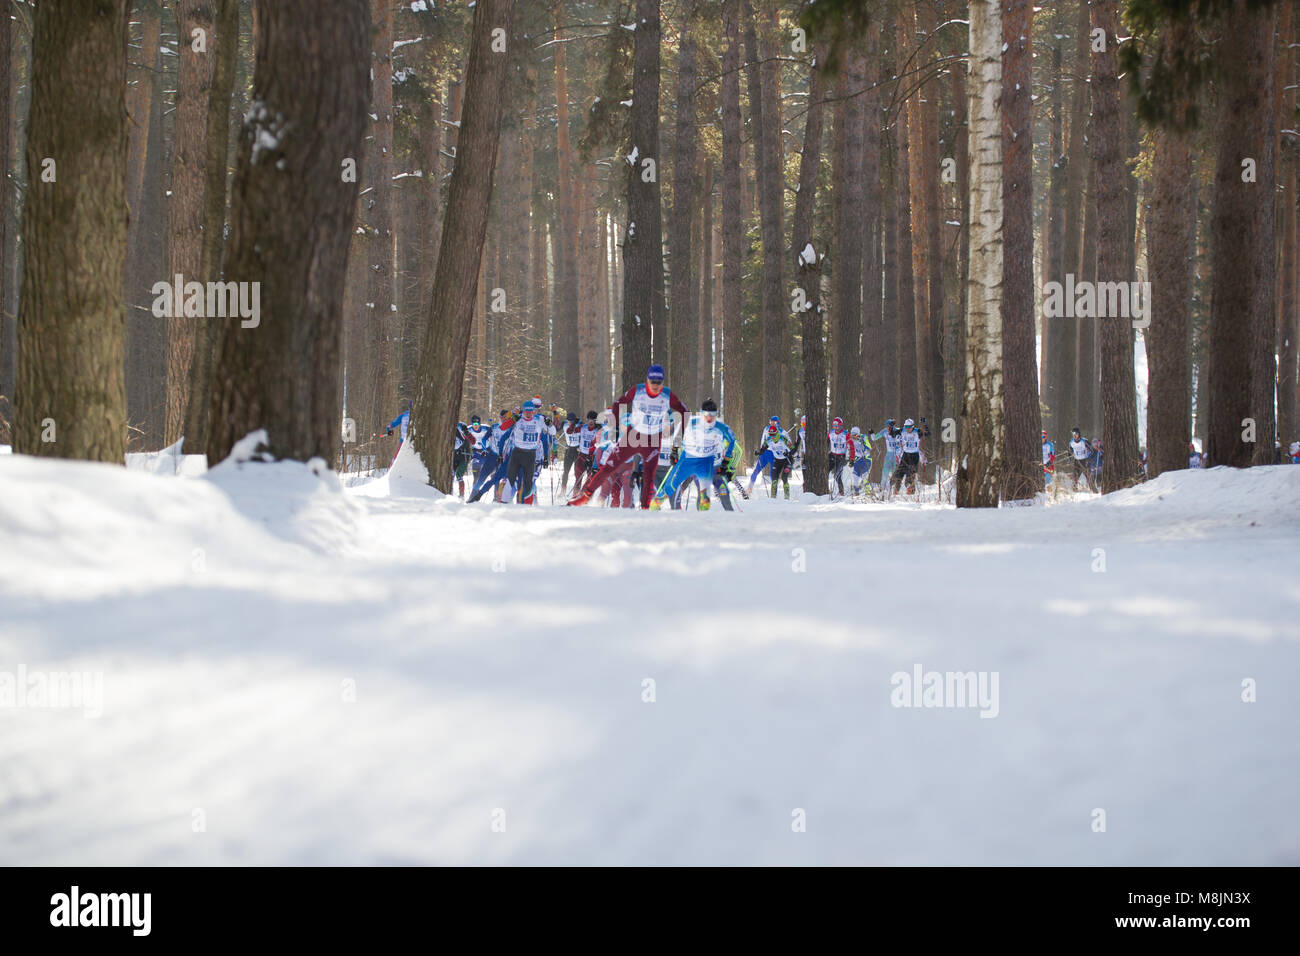 KAZAN, RUSSIA - March, 2018: Athletes skiers running a marathon in the winter woods Stock Photo